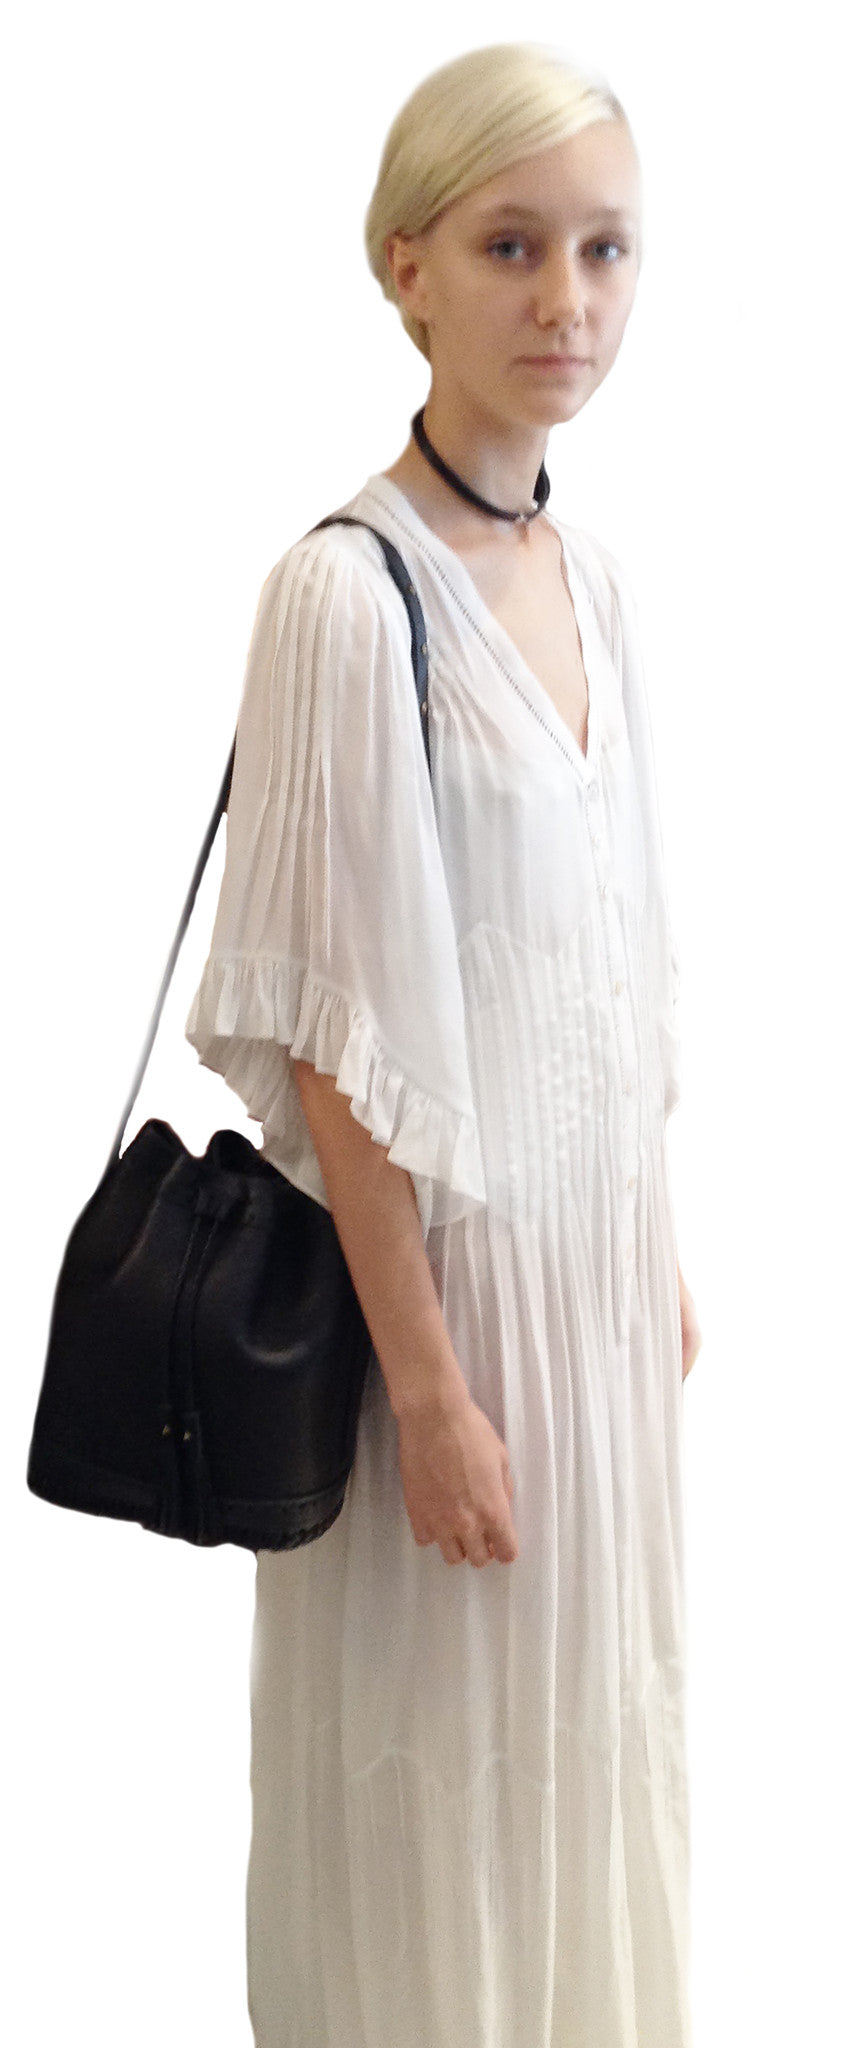 Juliette Fazekas IMG Model SS15 Space Master Fashion Show Leather Small Carriage Bag Wendy Nichol Handbag Purse Designer Handmade in NYC New York City Bucket Bag Drawstring Draw string Pouch small fringe tassel Adjustable Durable Strap High Quality Leather